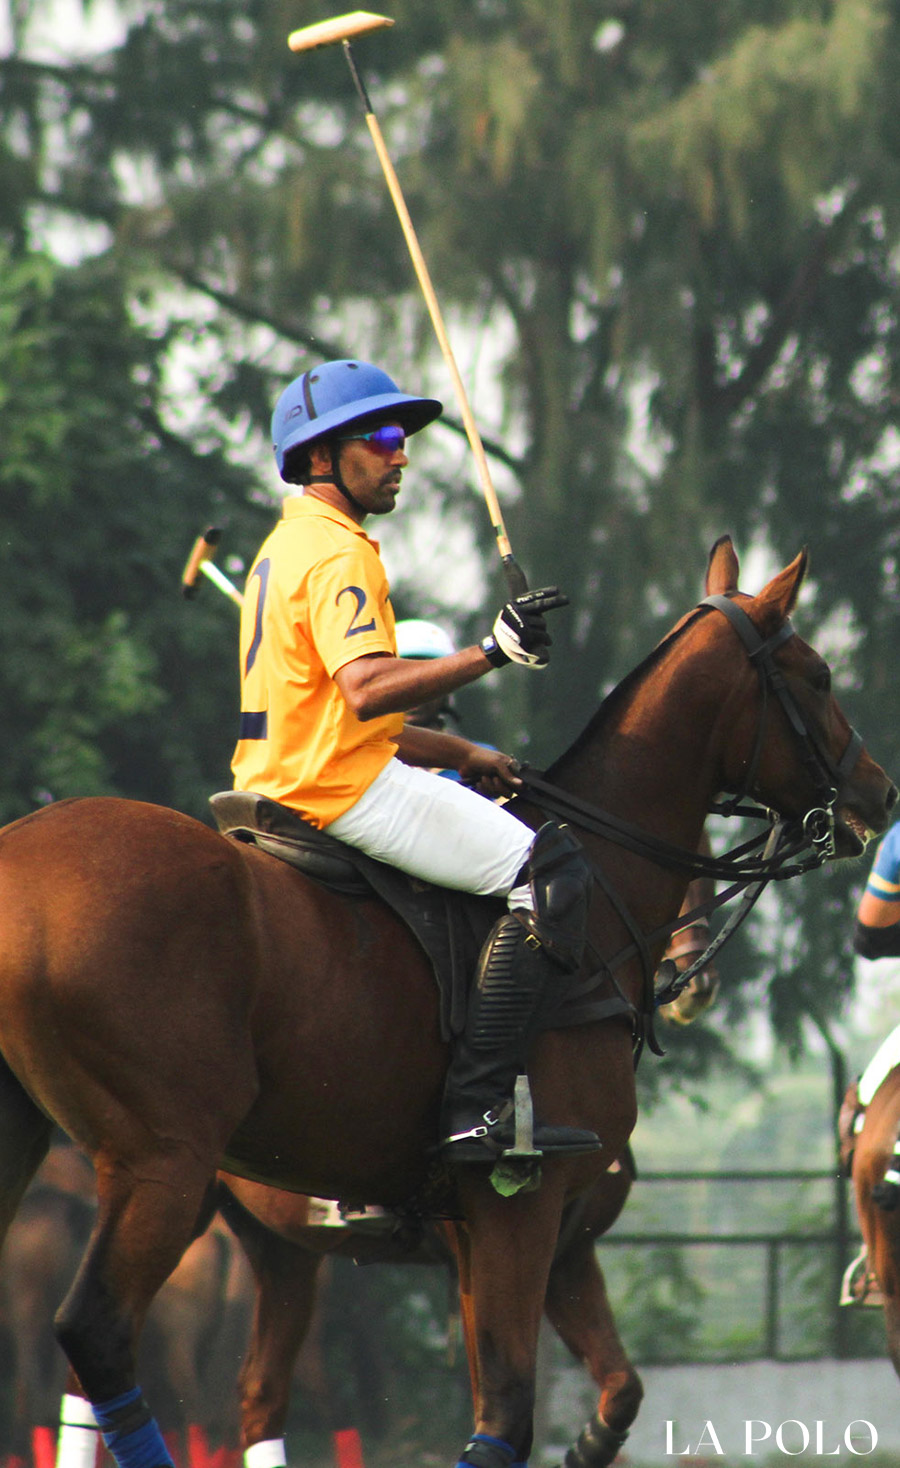 kuldeep-singh-rathore-playing-polo-lapolo